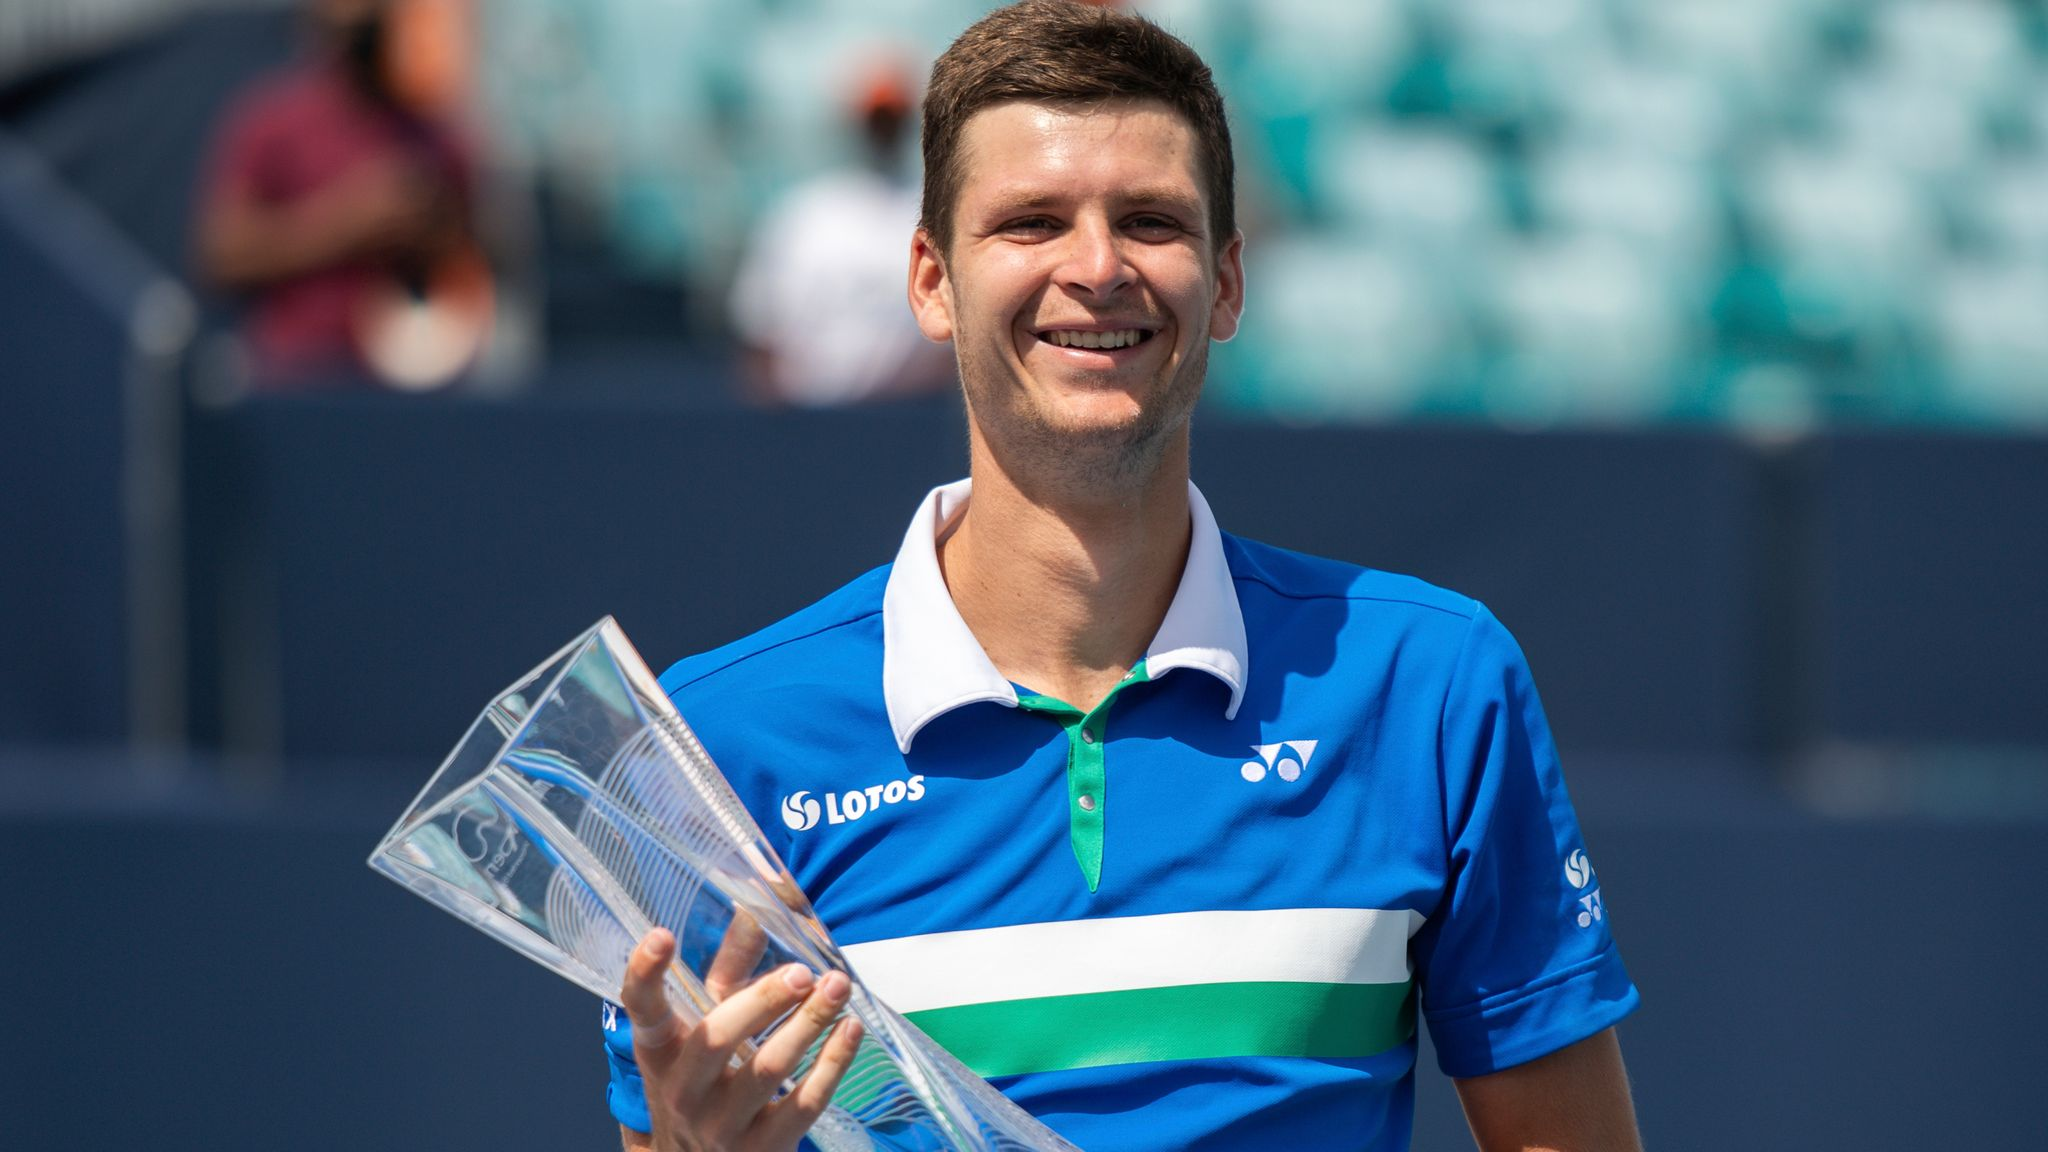 Hubert Hurkacz of Poland clinches Miami Open title